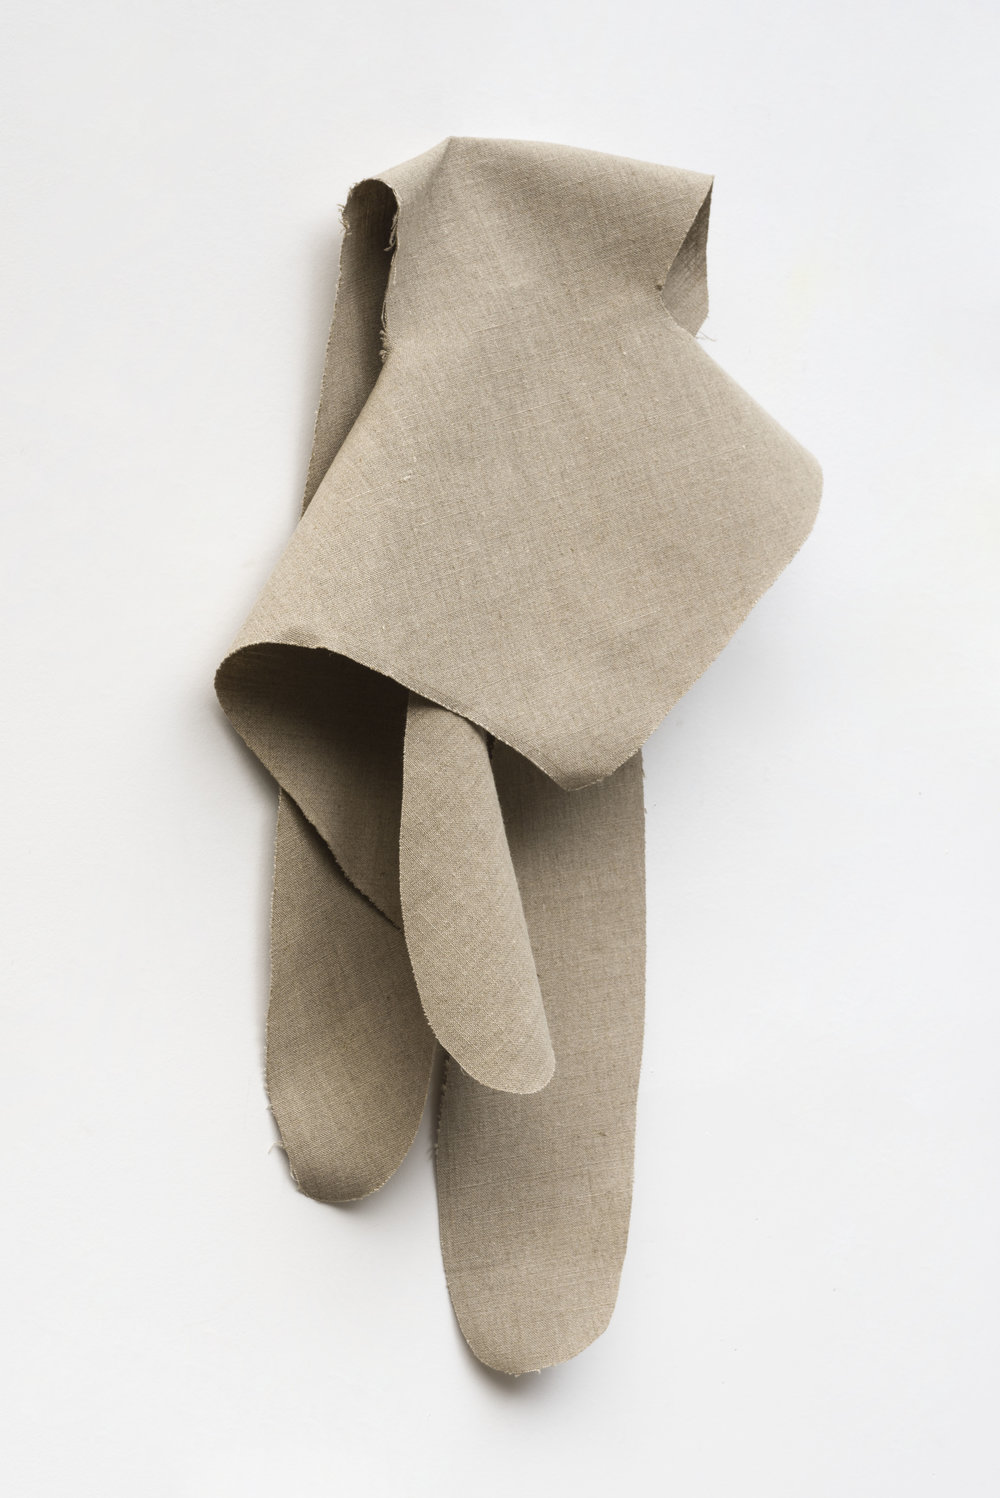 Nathan Mabry, Feels (Ghost IV), 2017 belgian linen, brass 76 x 51 x 21 cm - 29 x 20 3/32 x 8 9/32 inches